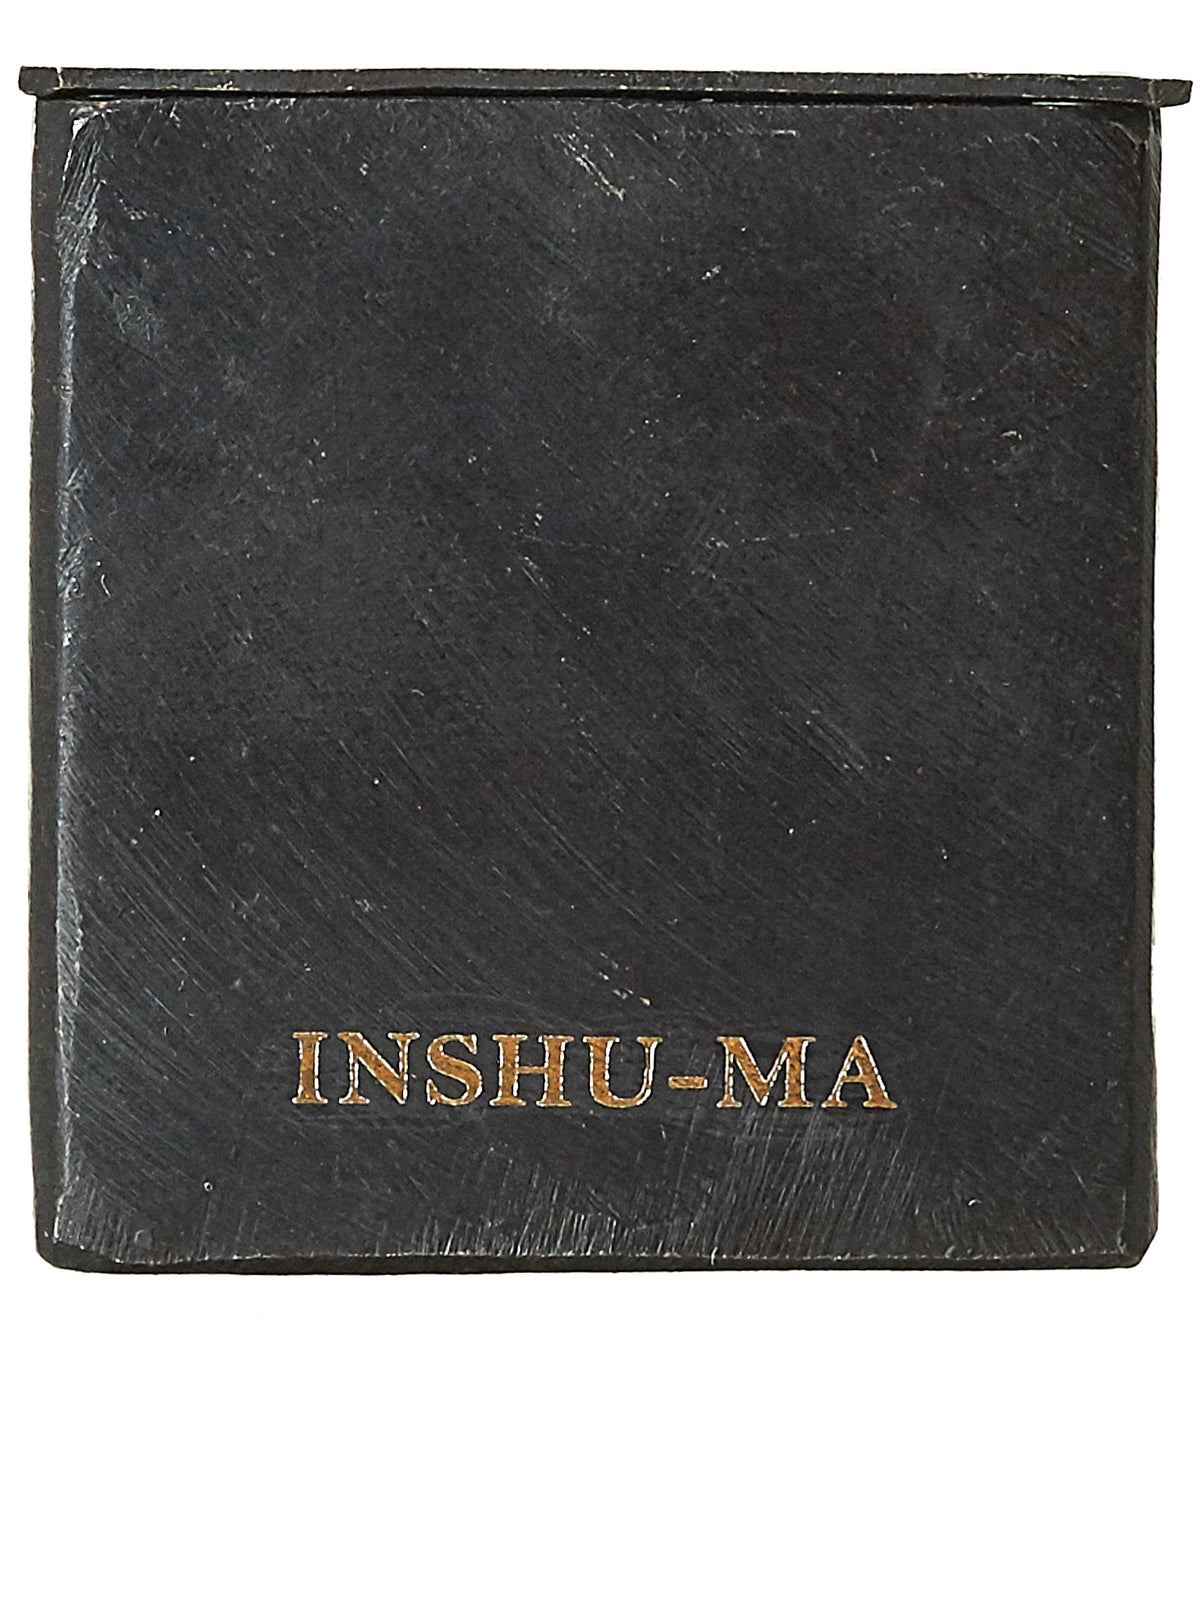 'Inshu Ma' Short Block Candle (ML-BCMN-IM-INSHUMA-5X5)